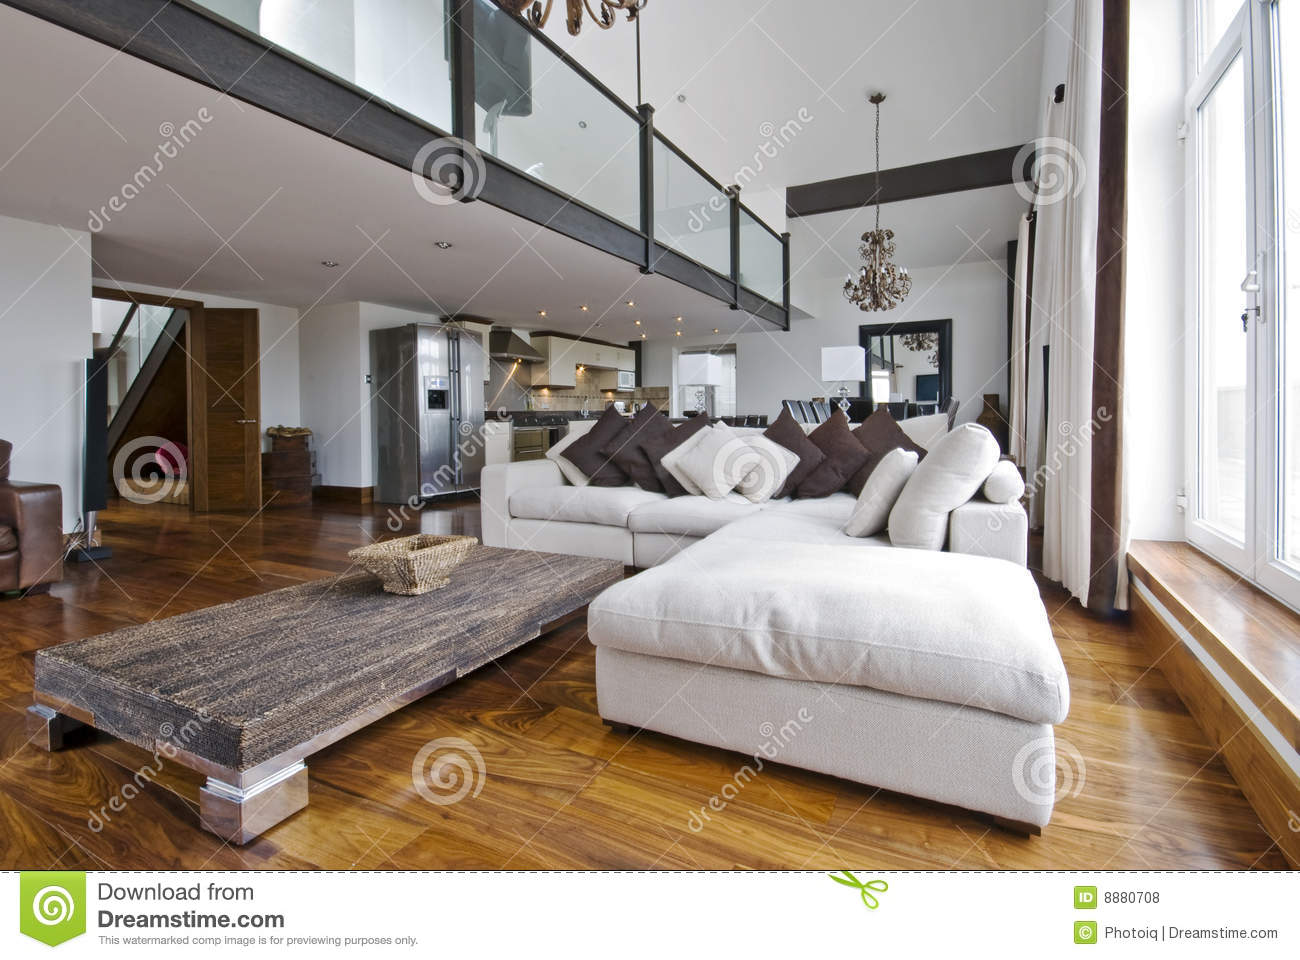 Open Plan Living Room Royalty Free Stock Photos - Image: 8880708